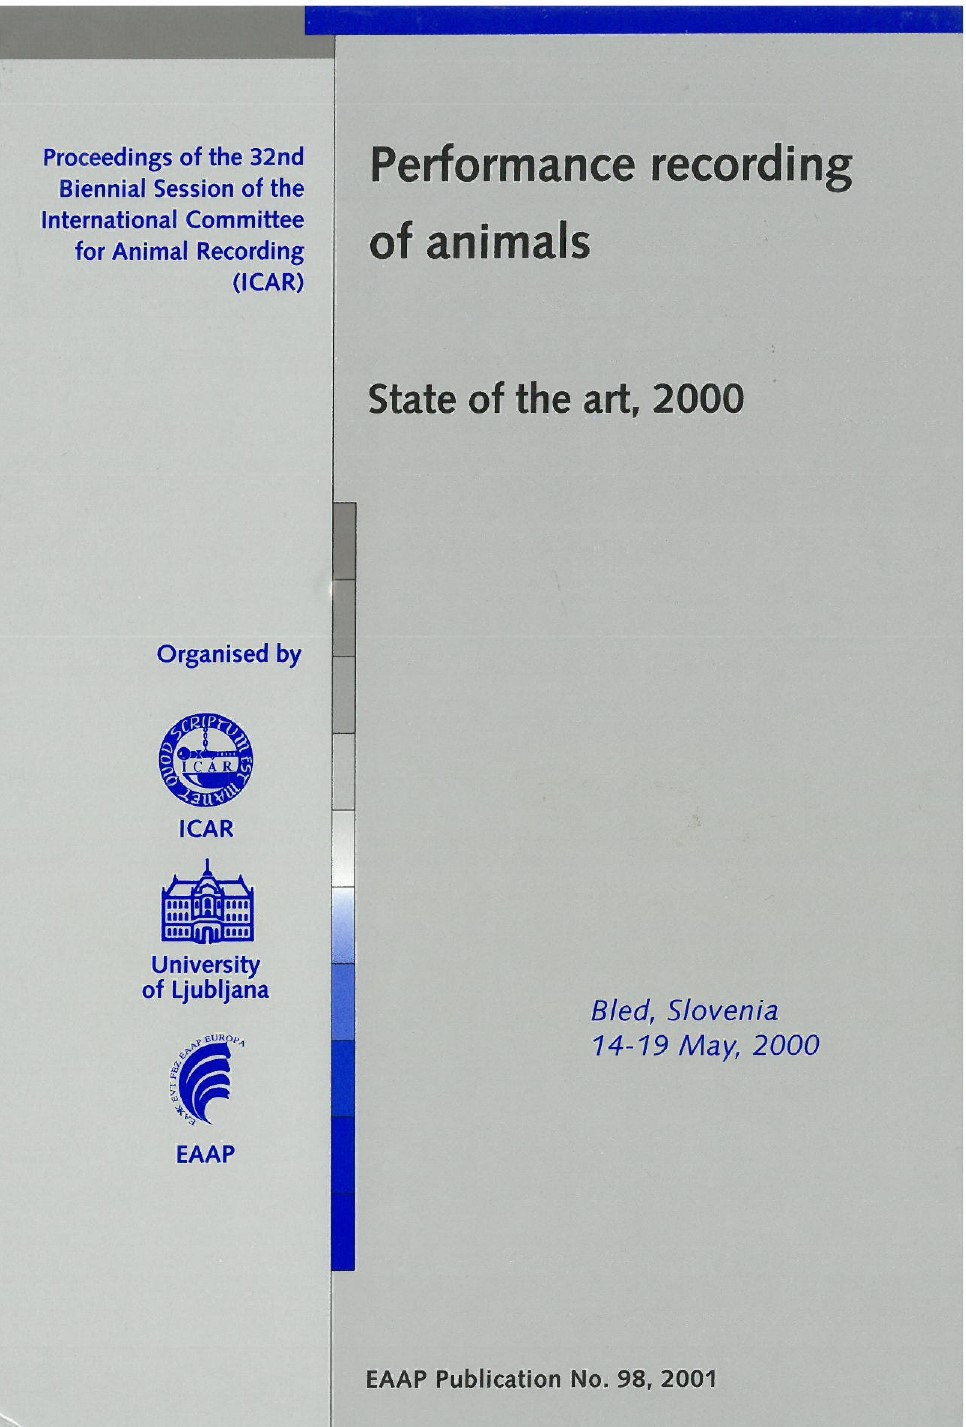 Performance recording of animals – State of the art, 2000